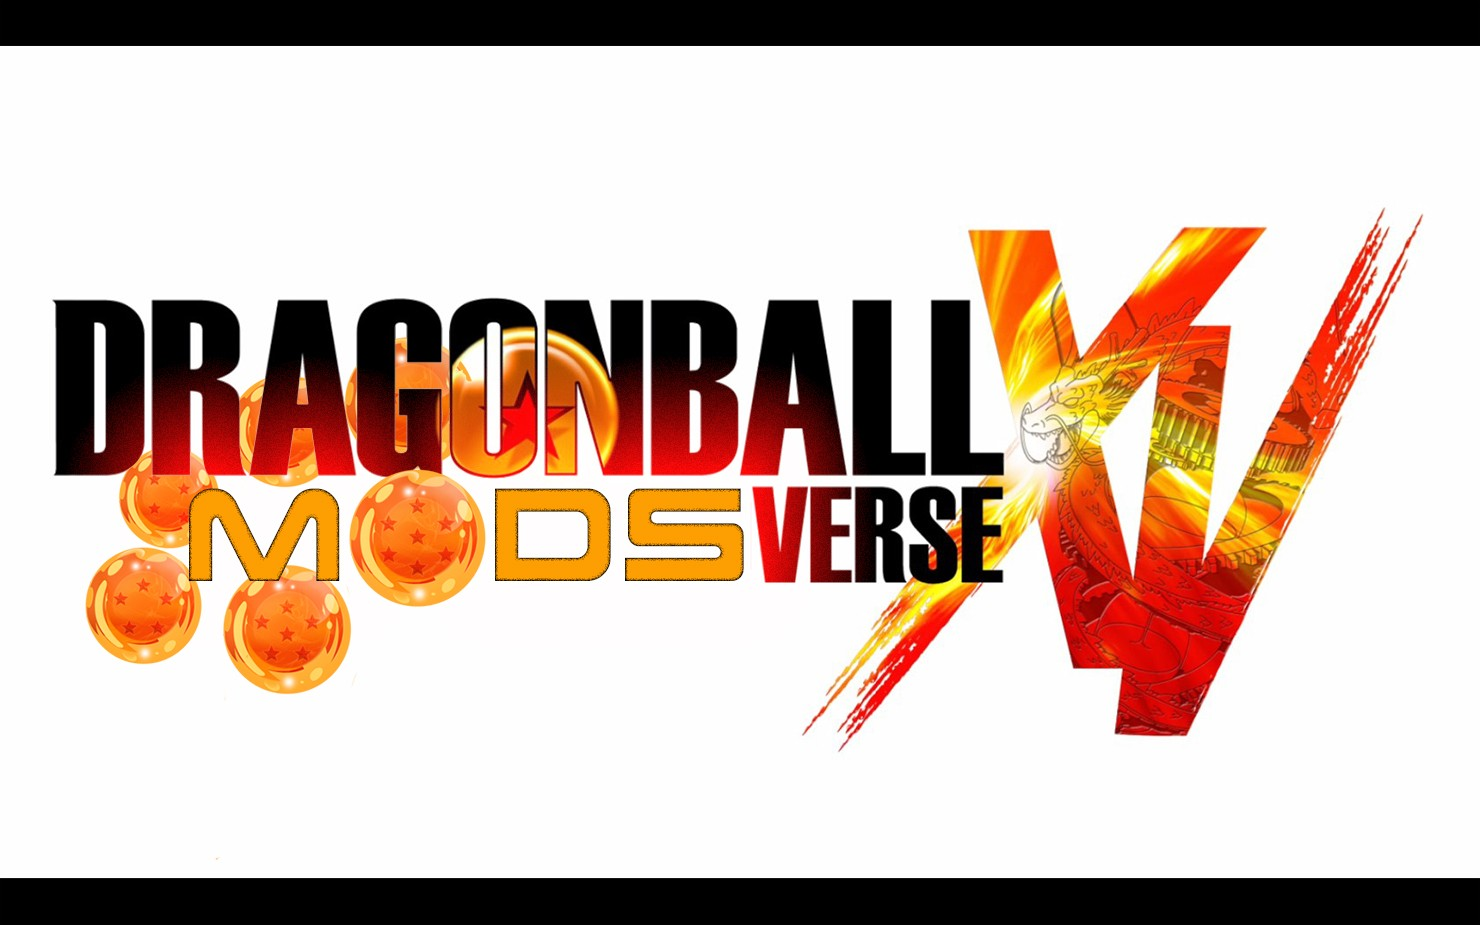 Dragon Ball Modsverse